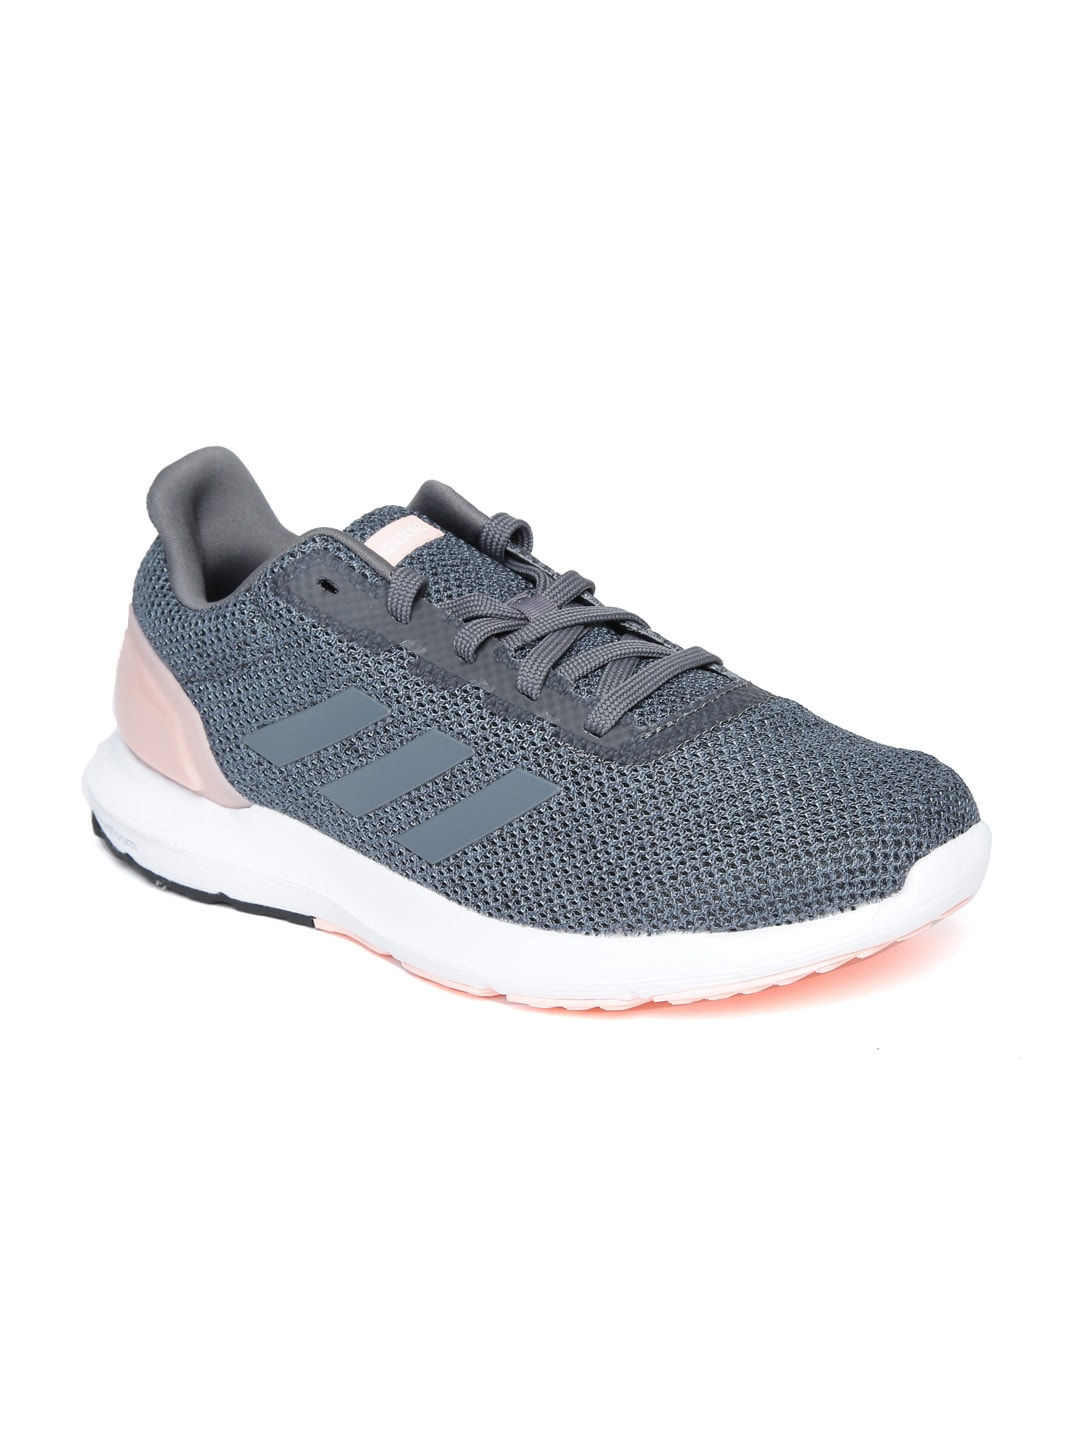 57e59615873a Women s Adidas Shoes - Buy Adidas Shoes for Women Online in India